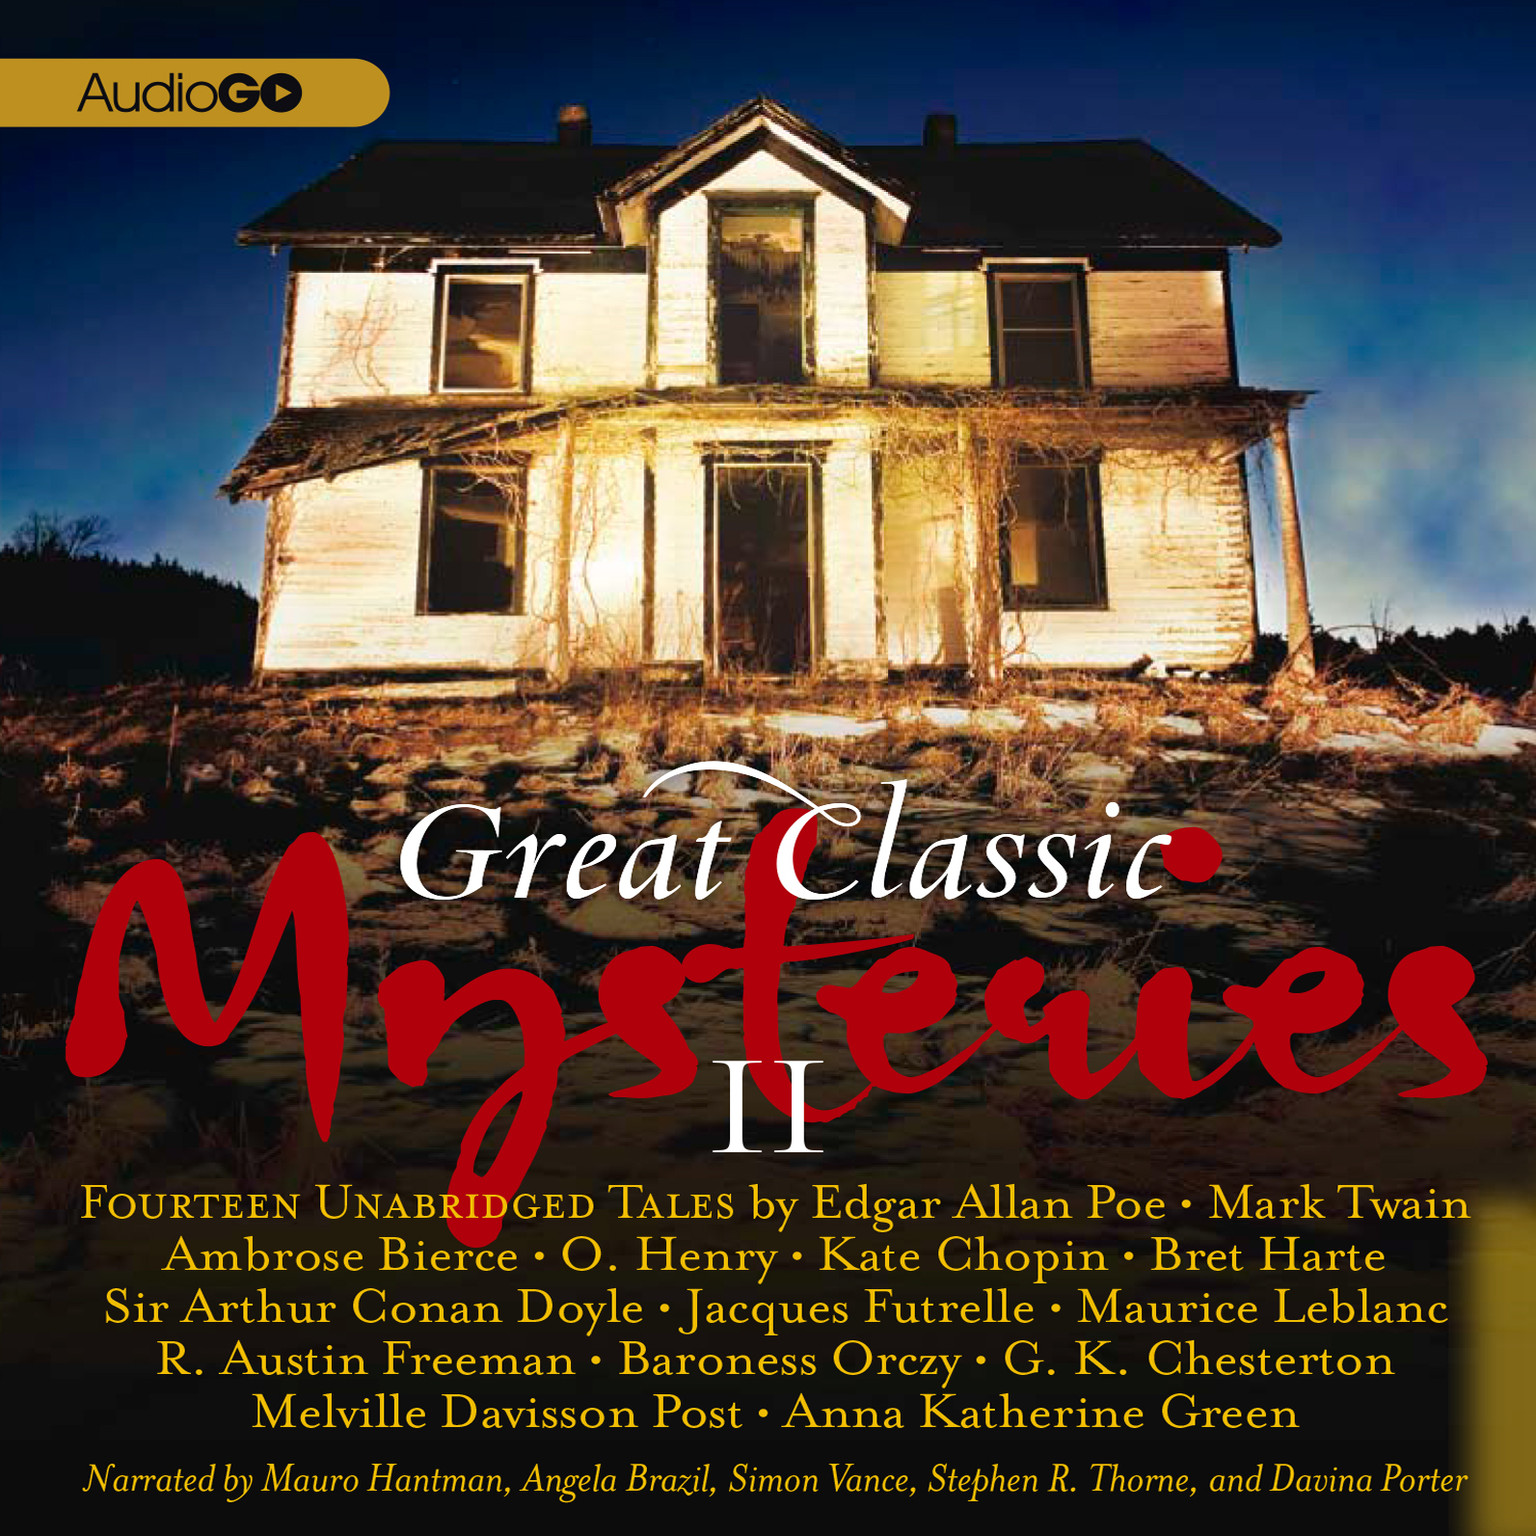 Printable Great Classic Mysteries II Audiobook Cover Art